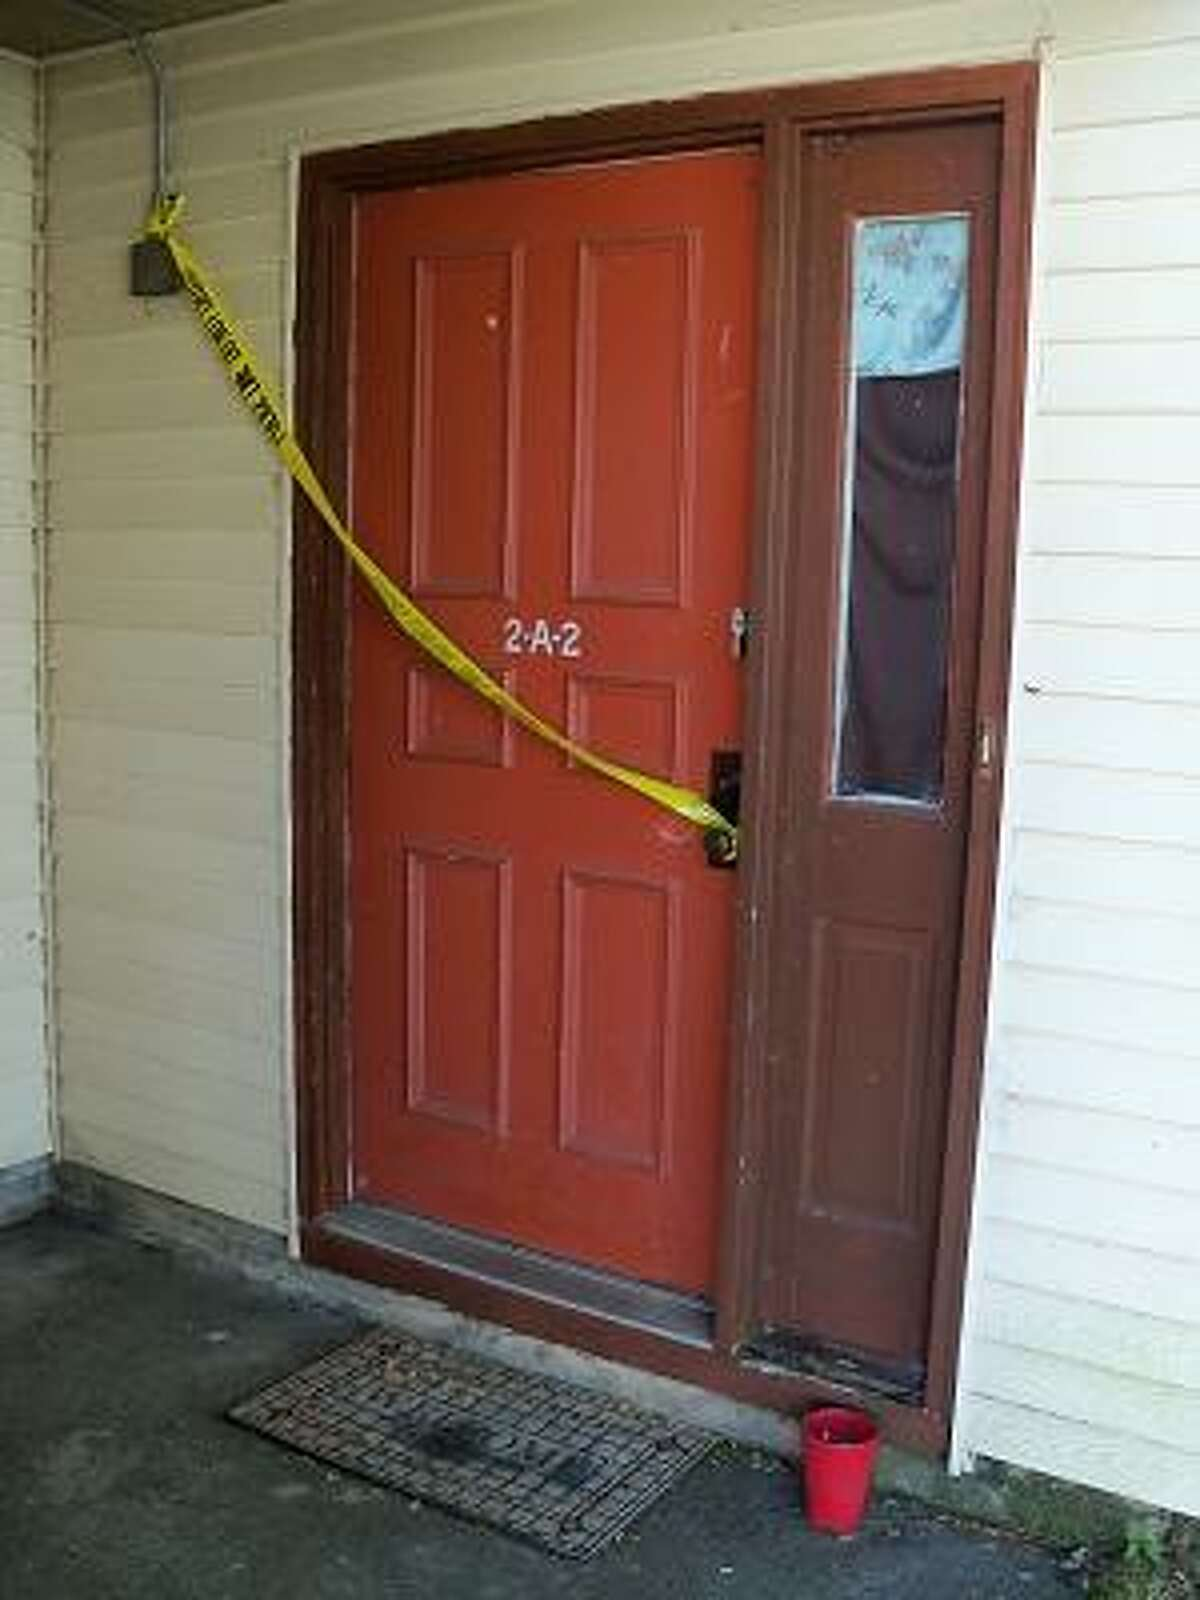 Police tape blocks off the door of an apparent shooting in Canton. Photo by Scot Allyn/Register Citizen Staff